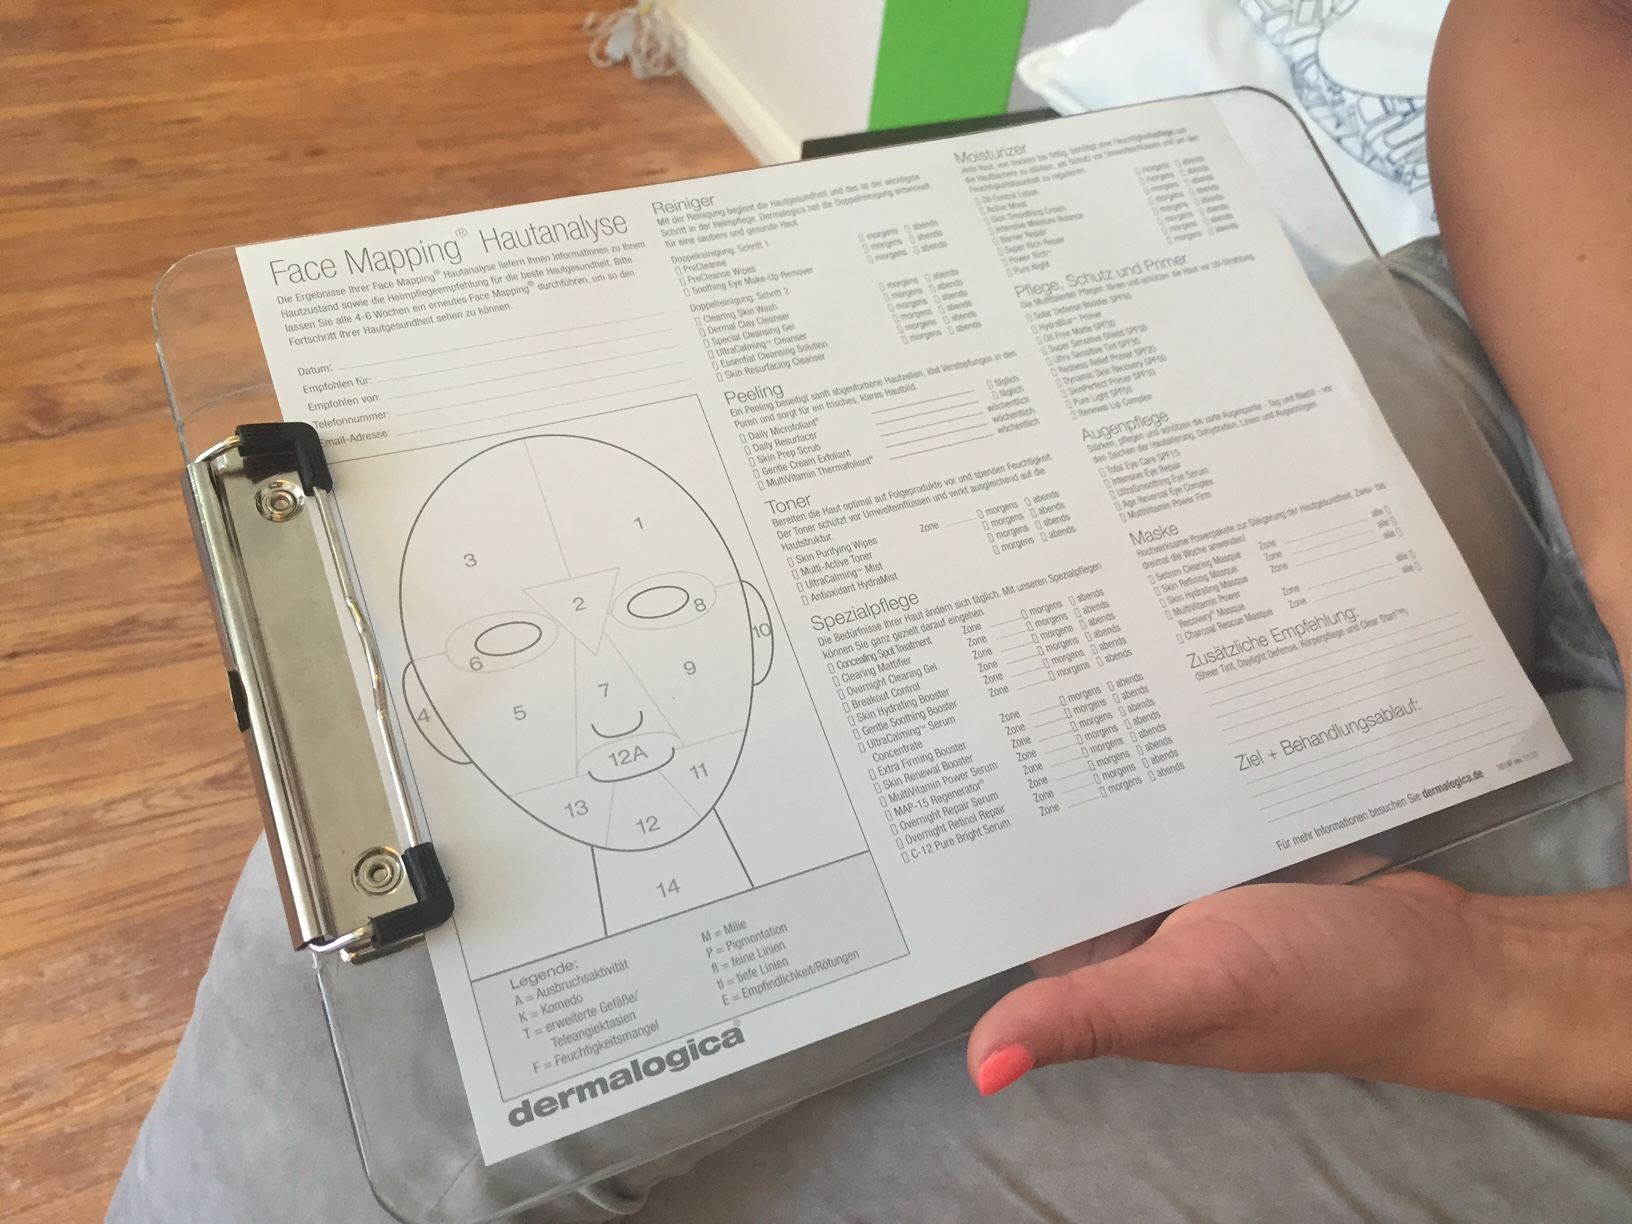 Dermalogica Face Mapping - Wellness & mehr on